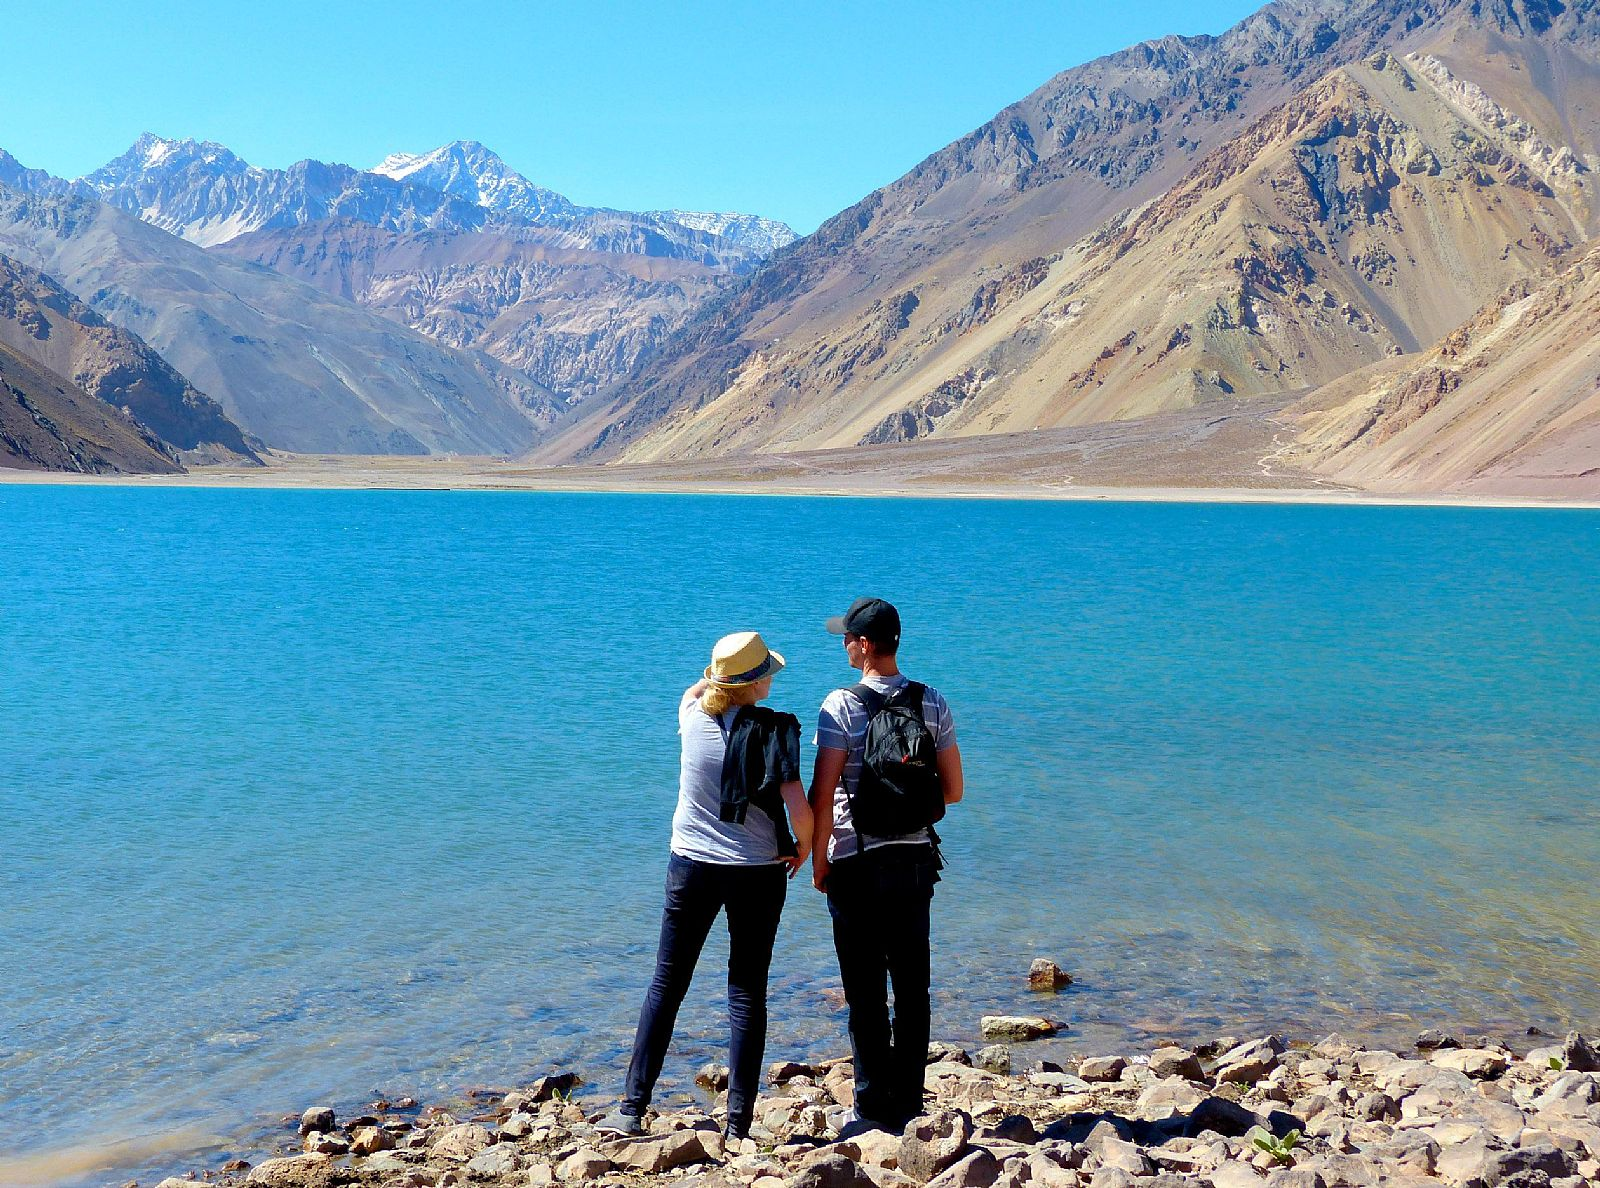 Embalse del yeso fotos 17